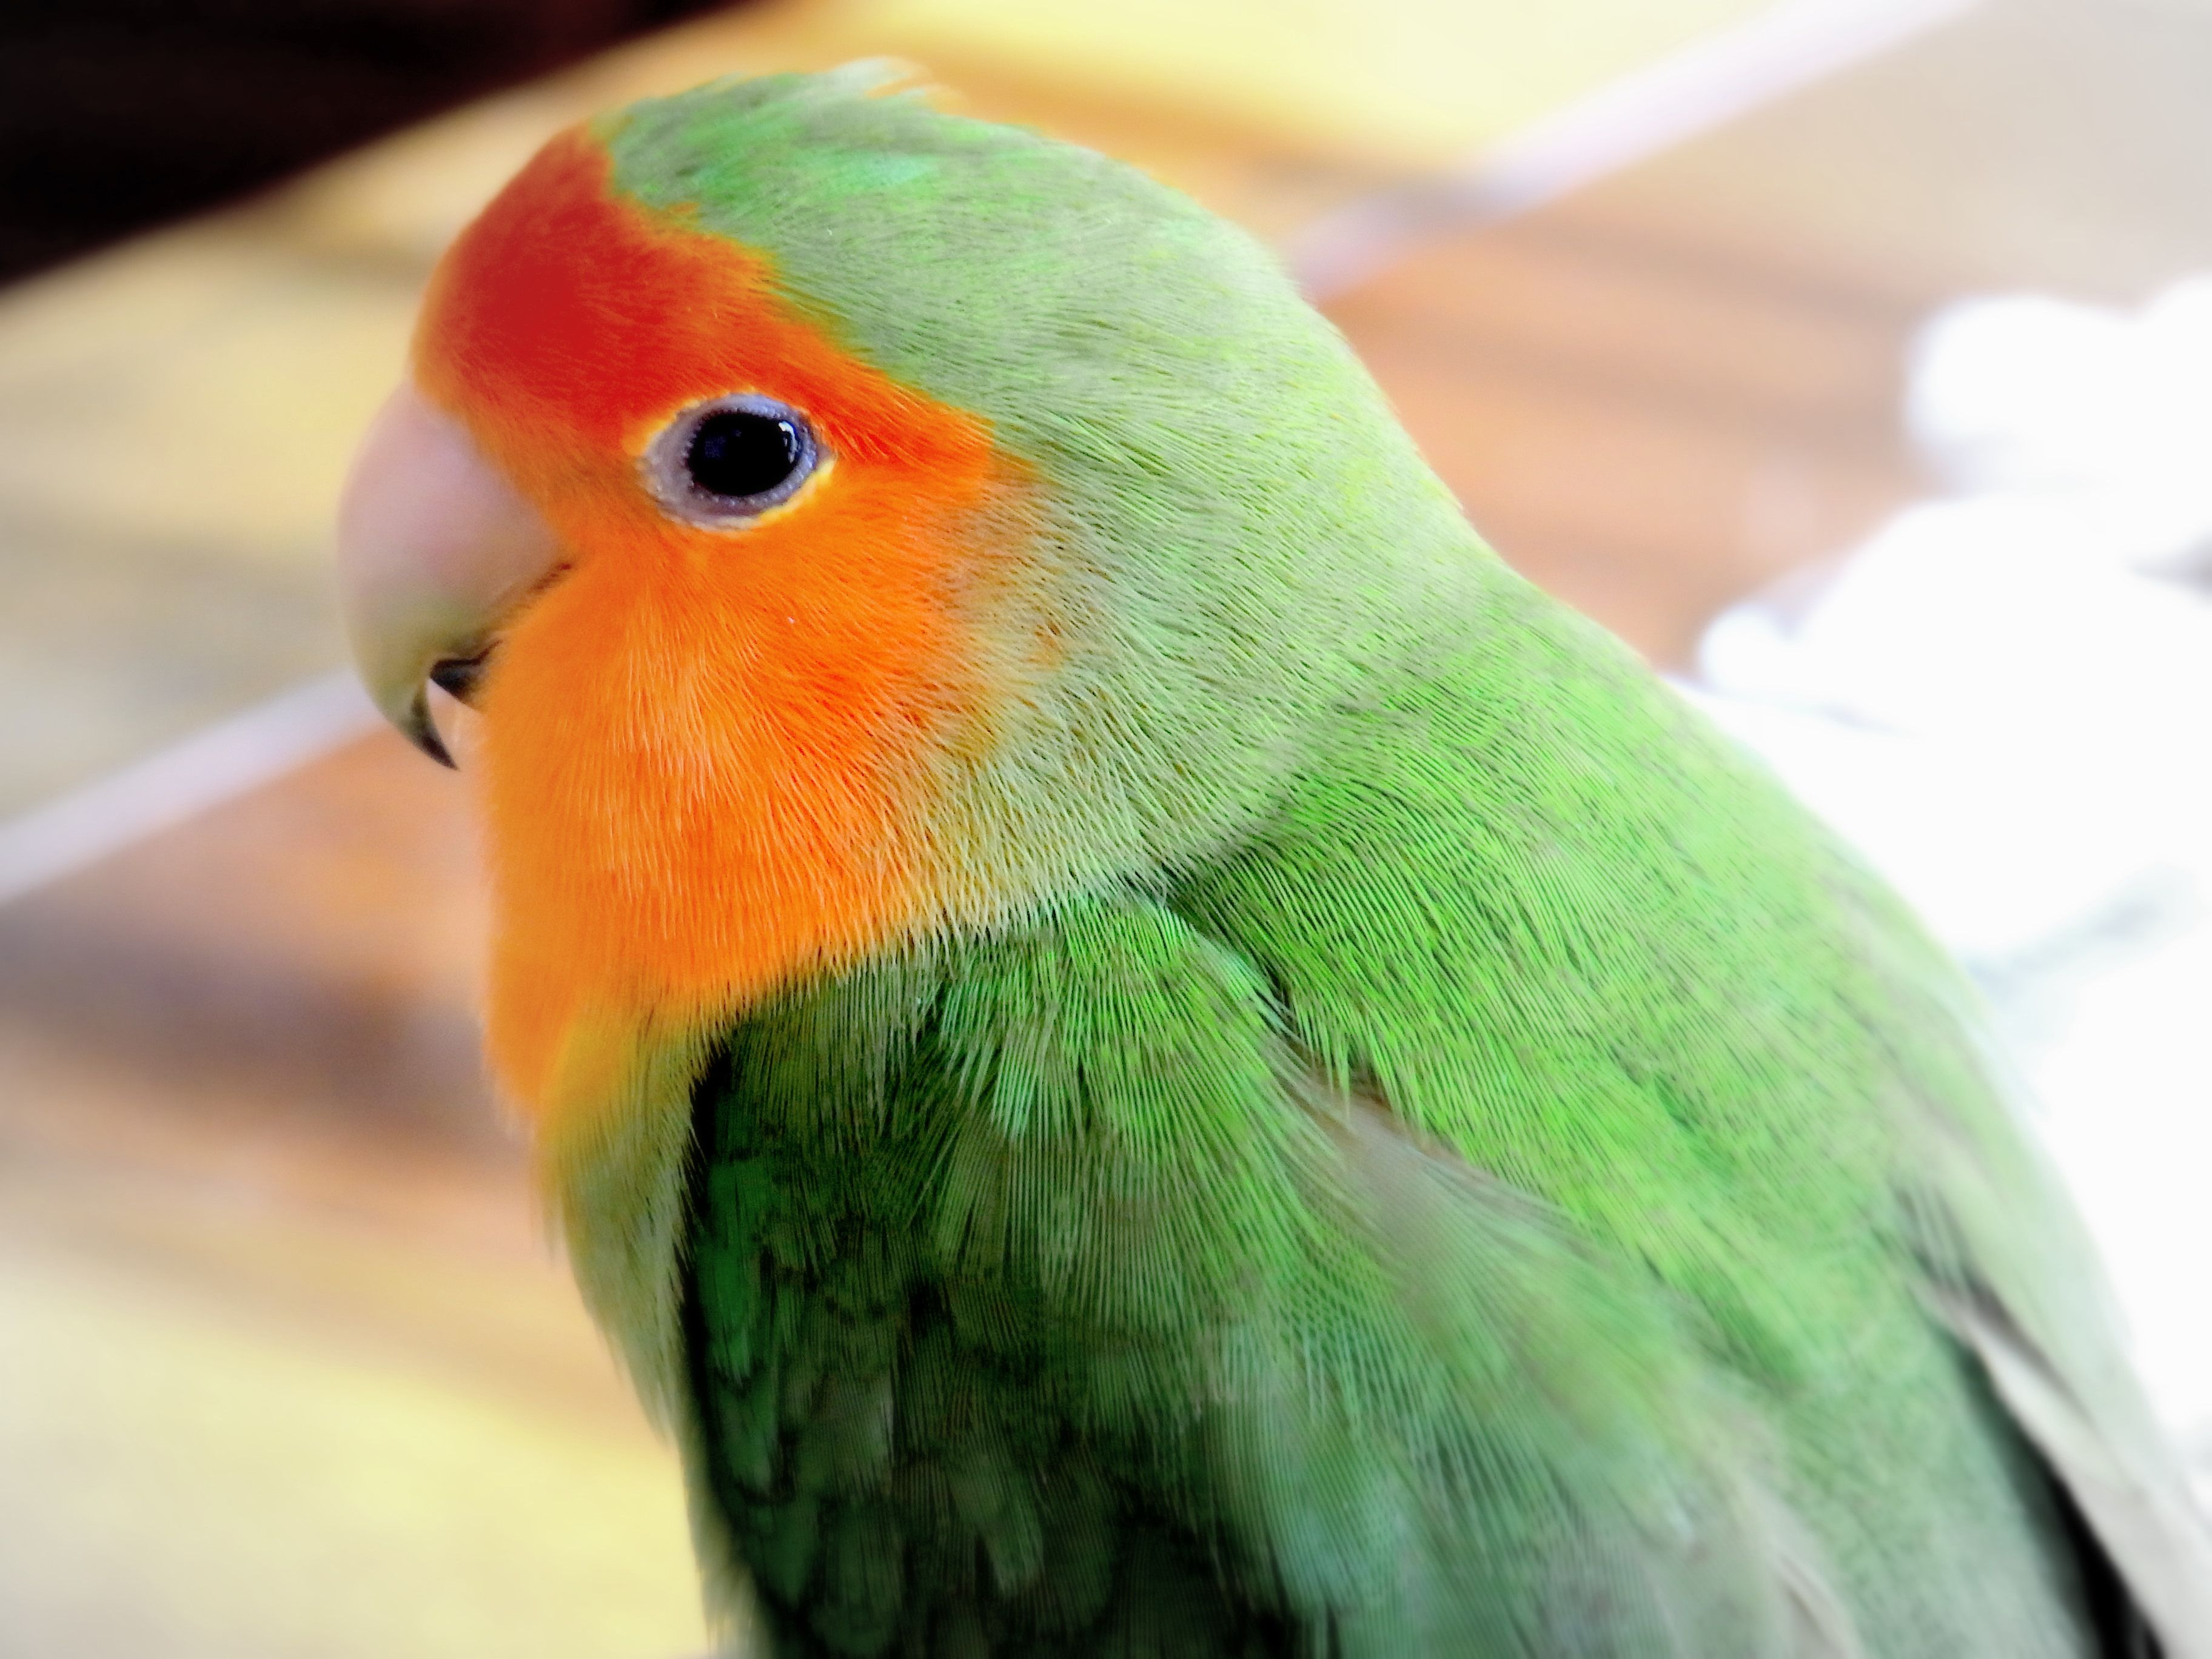 Peachfaced or Rosy Pictures of peach faced lovebirds